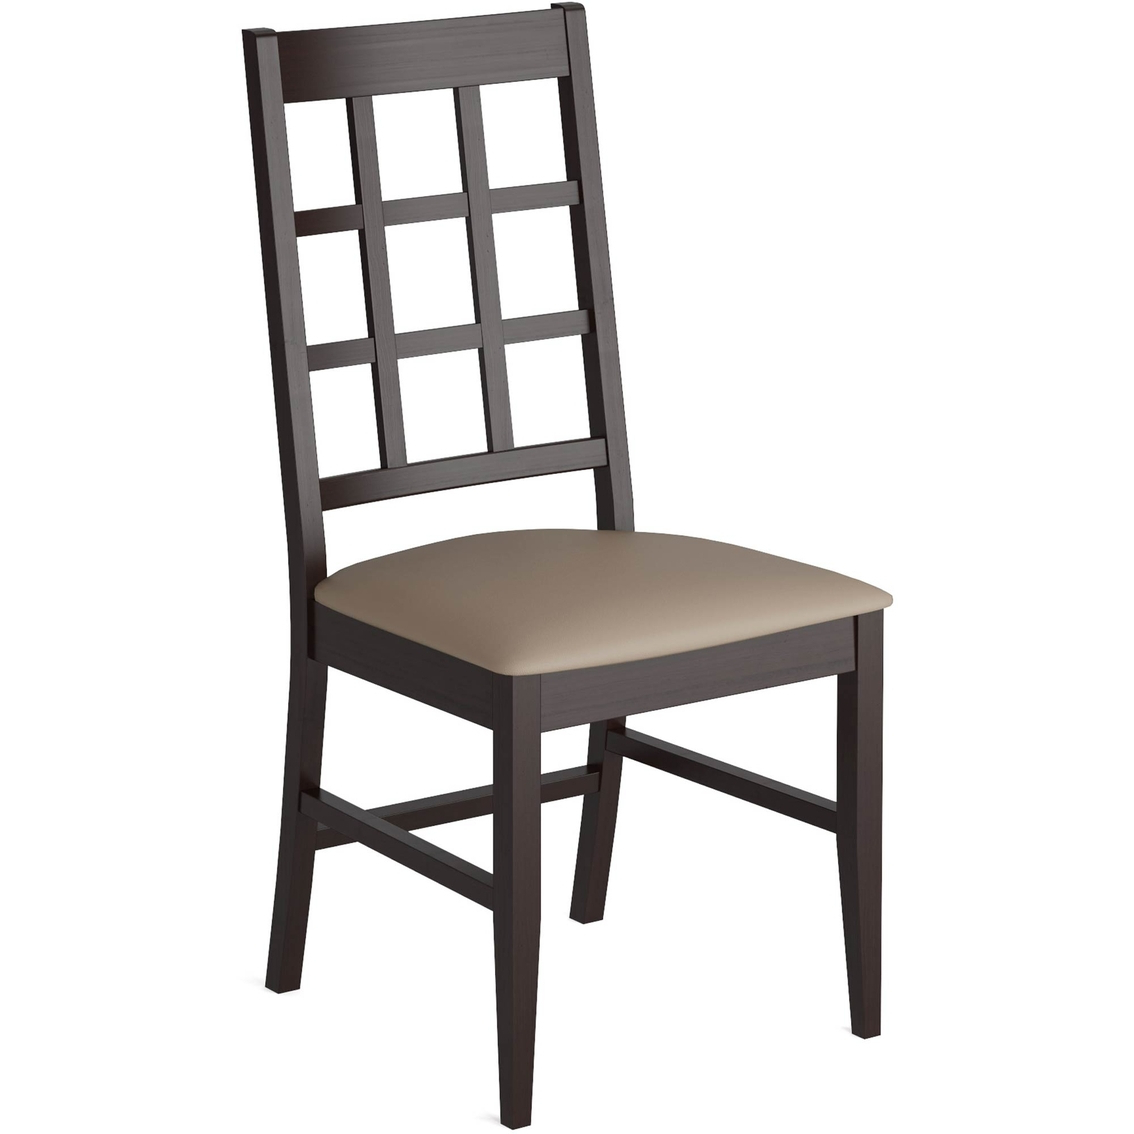 Corliving Atwood Dining Chairs With Leatherette Seat 2 Pk For Favorite Atwood Transitional Square Dining Tables (View 12 of 25)